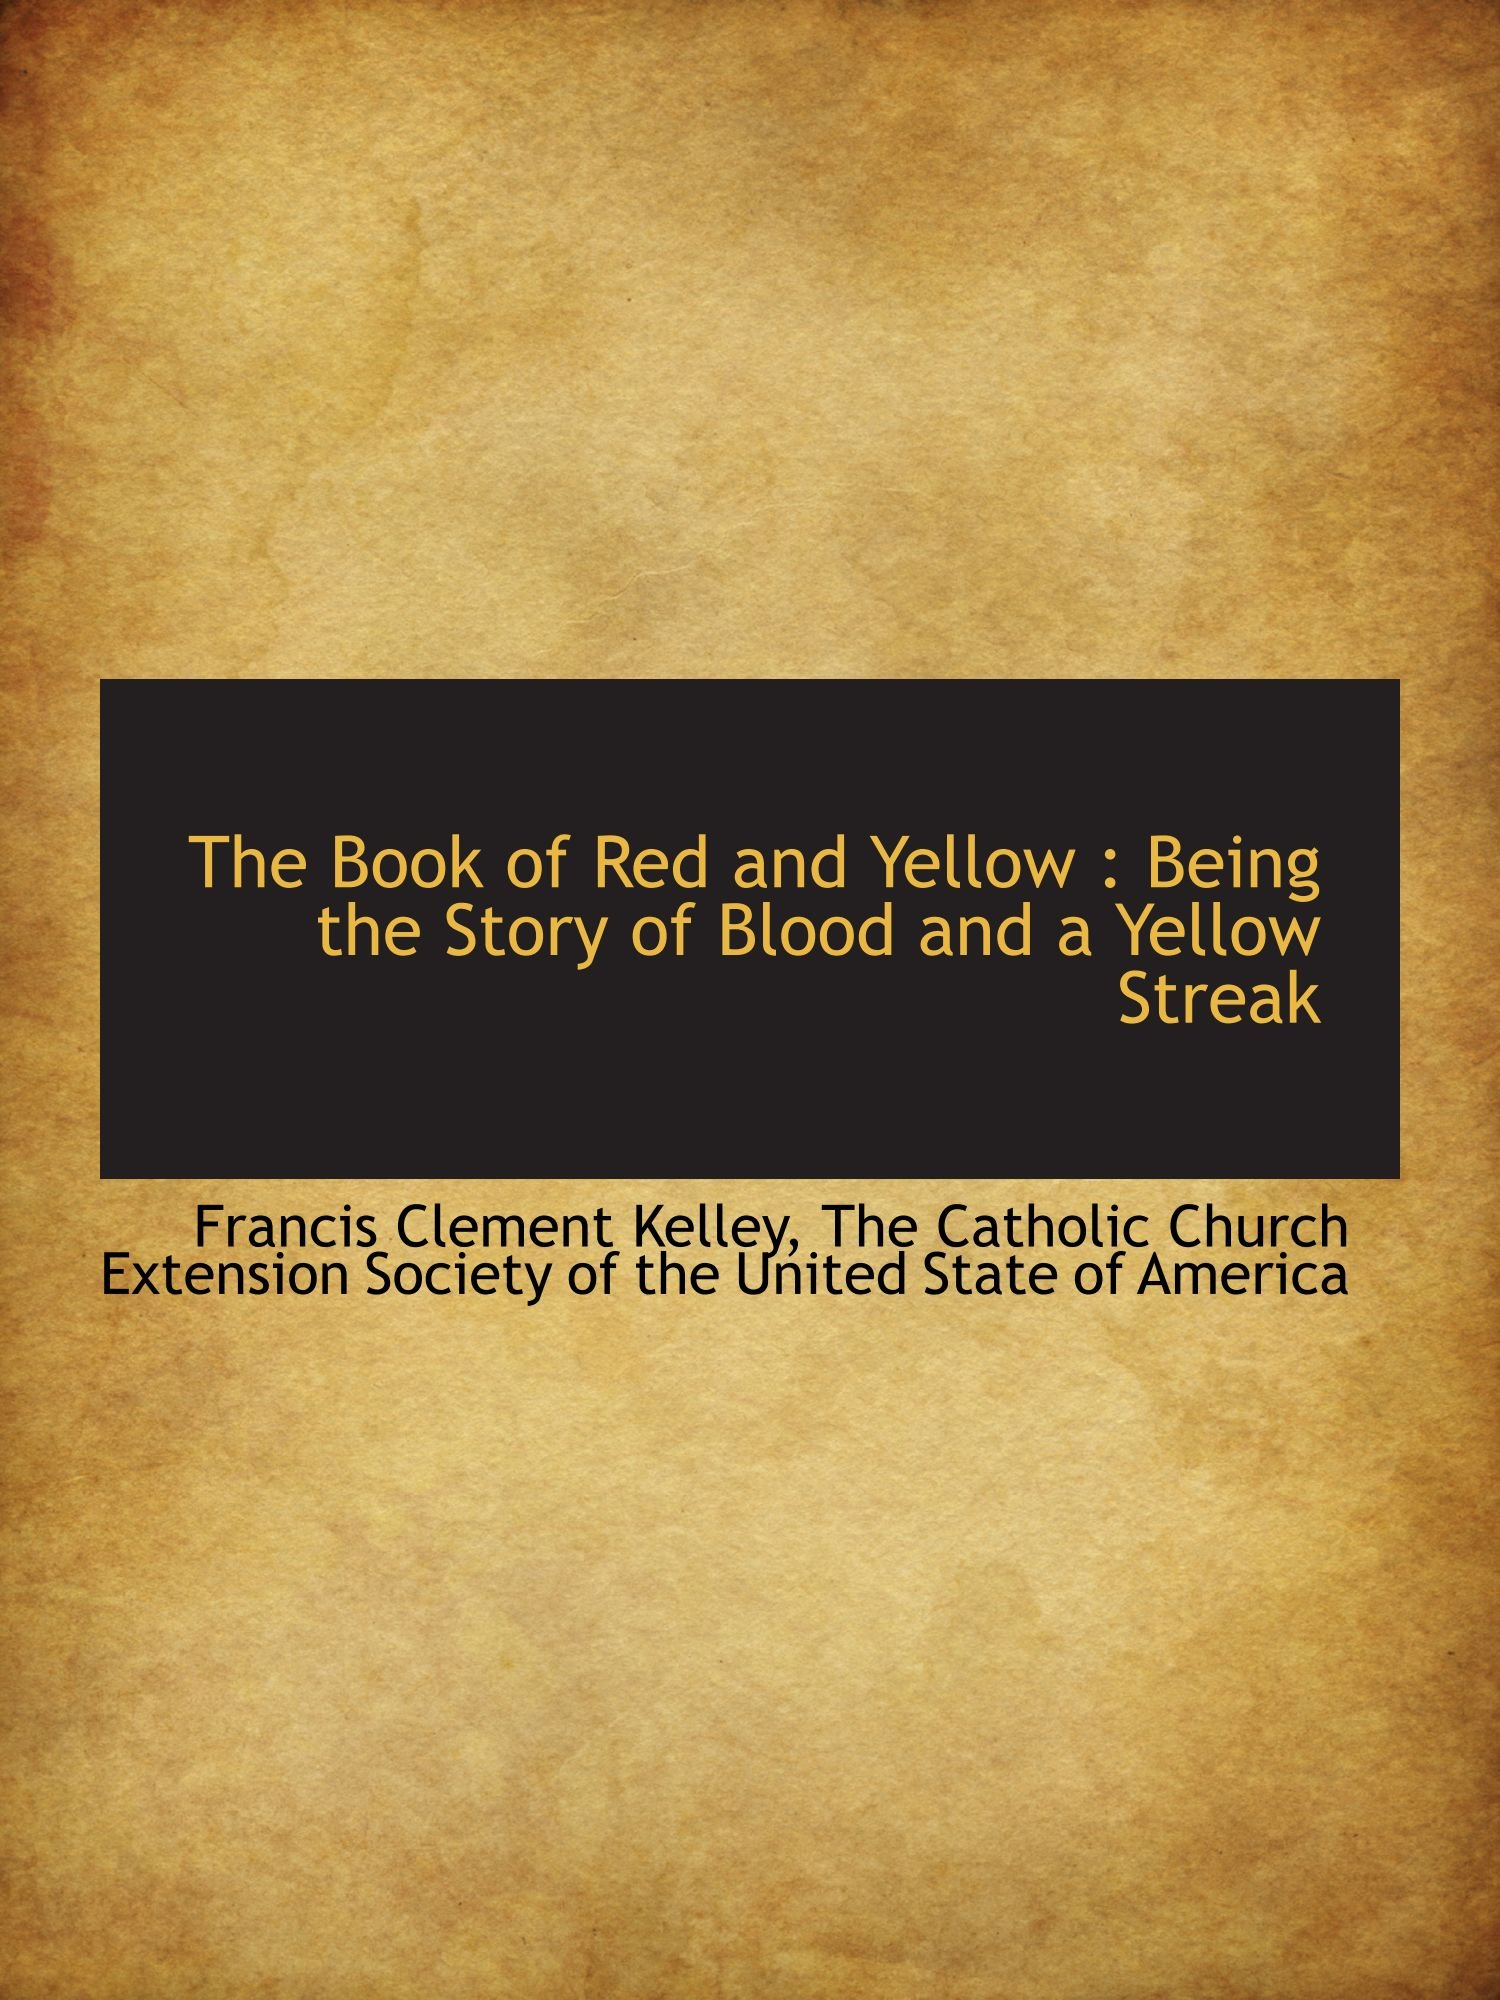 The Book of Red and Yellow : Being the Story of Blood and a Yellow Streak PDF ePub fb2 ebook